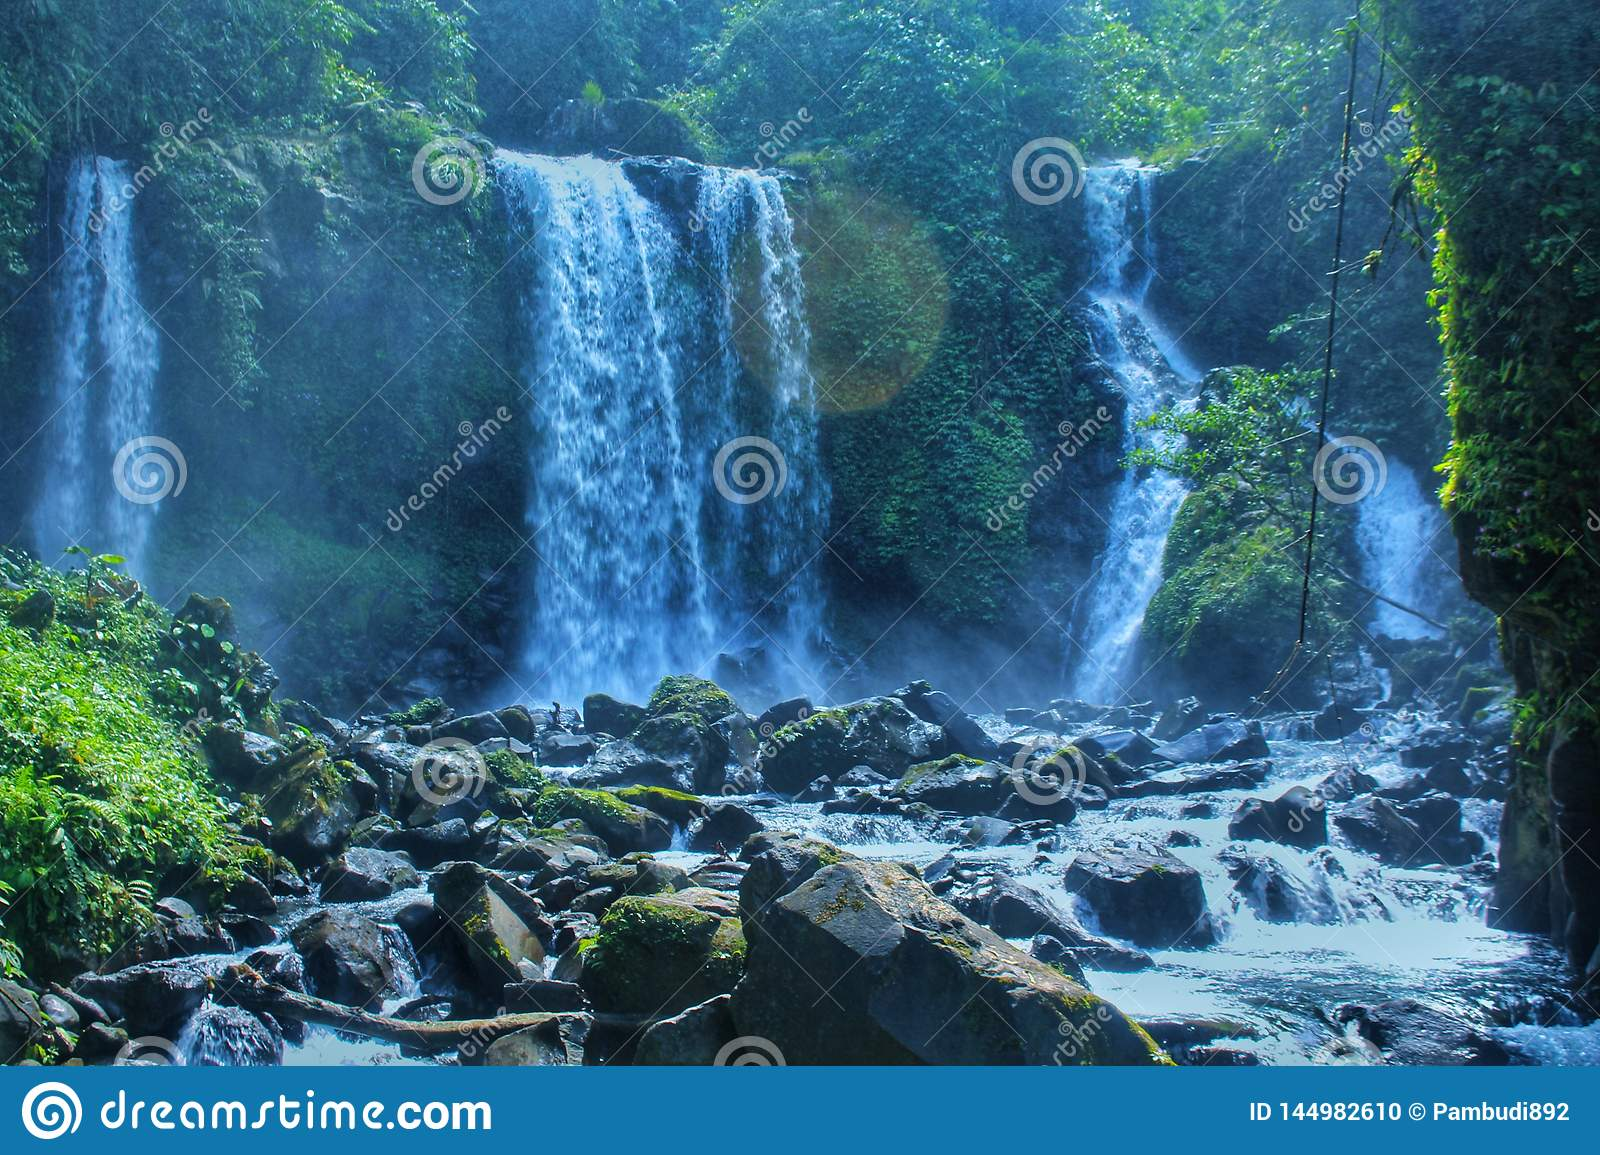 The beauty of the waterfalls